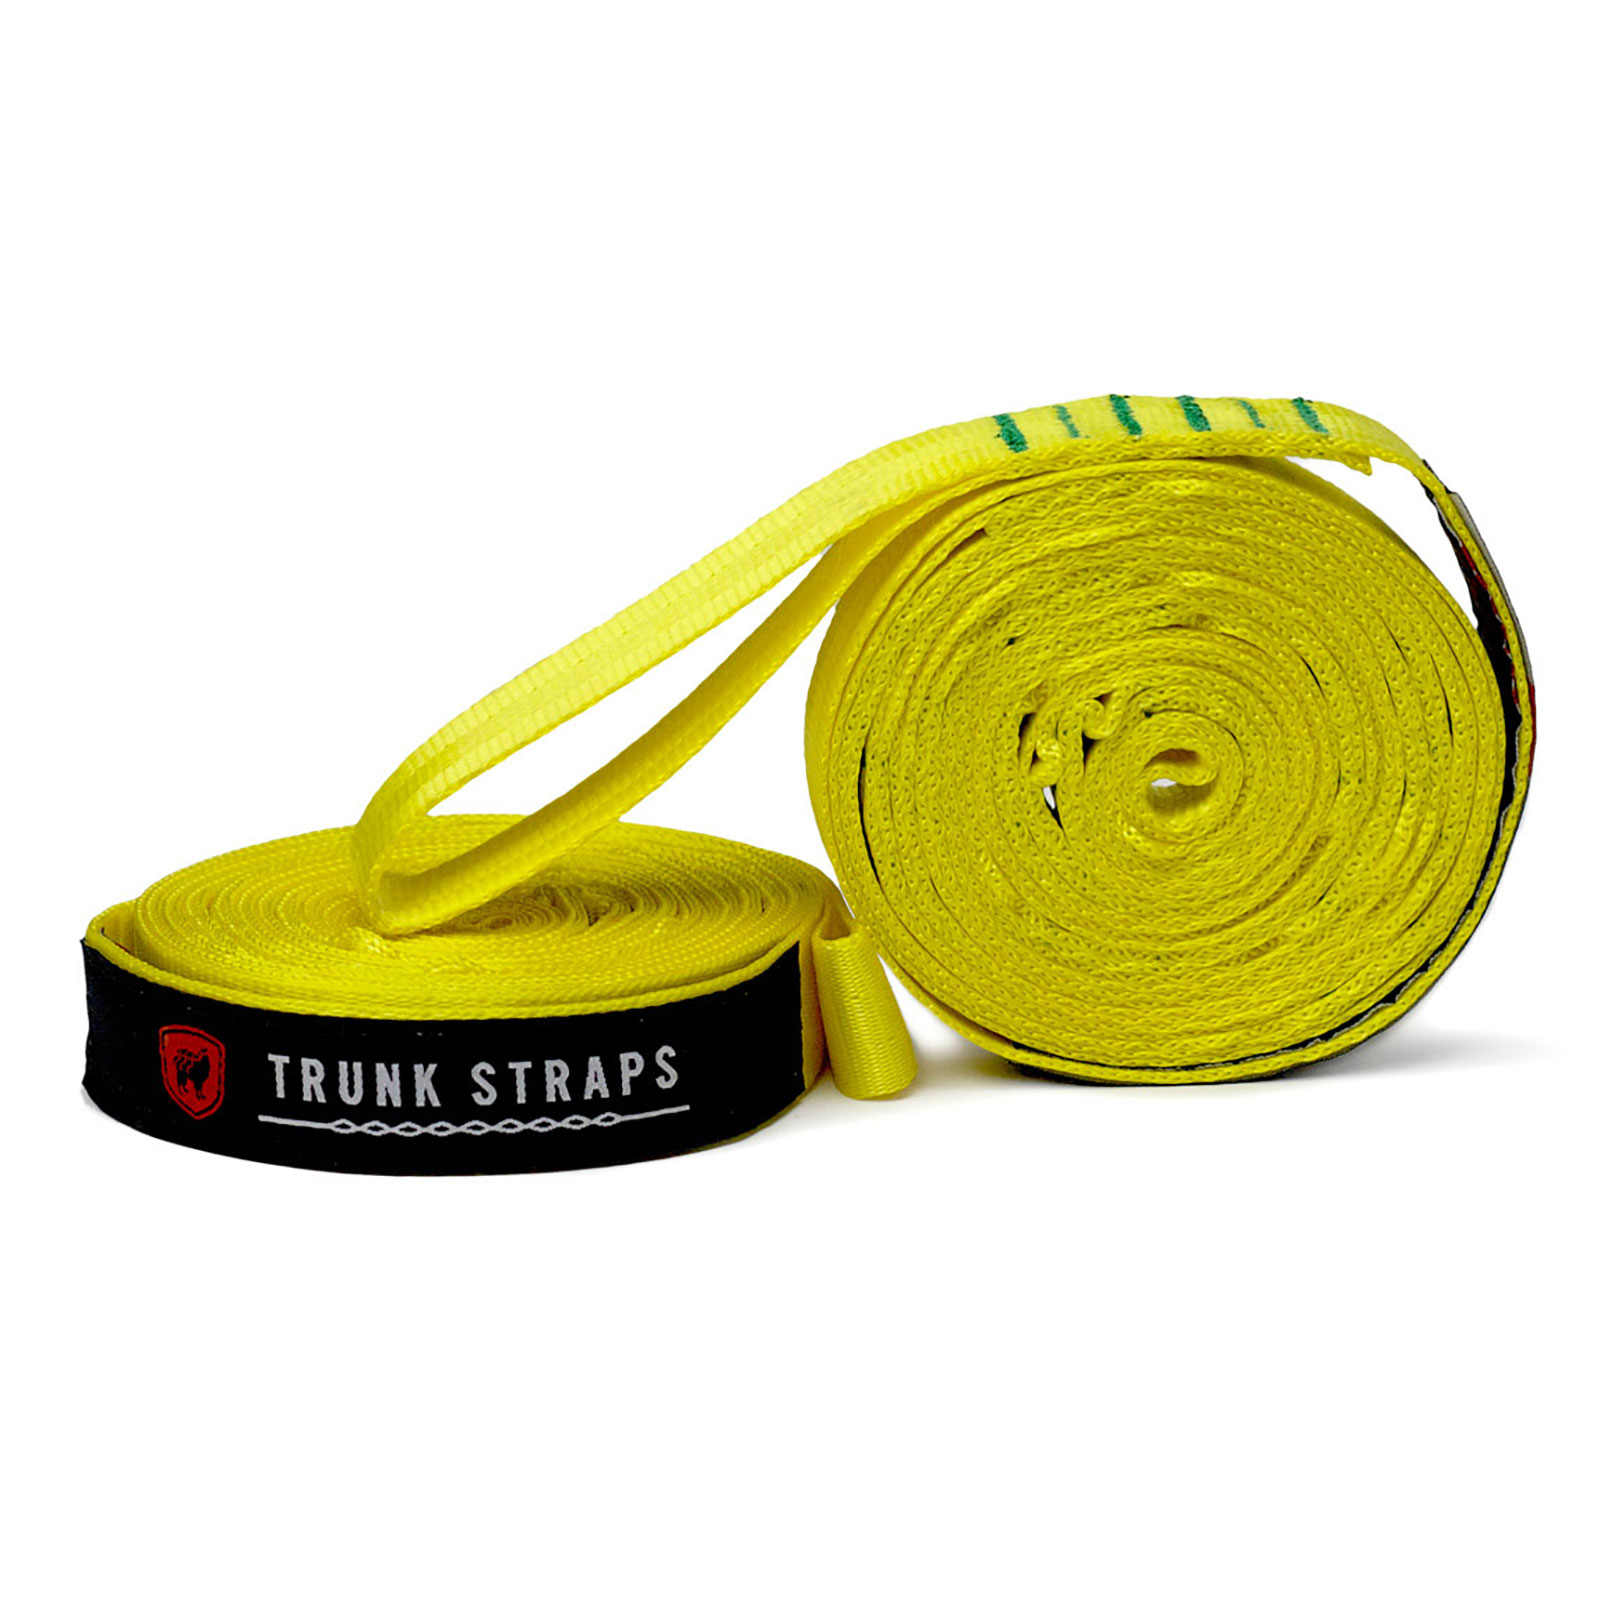 Grand Trunk Hammock Trunk Straps Tree Outdoor Camping